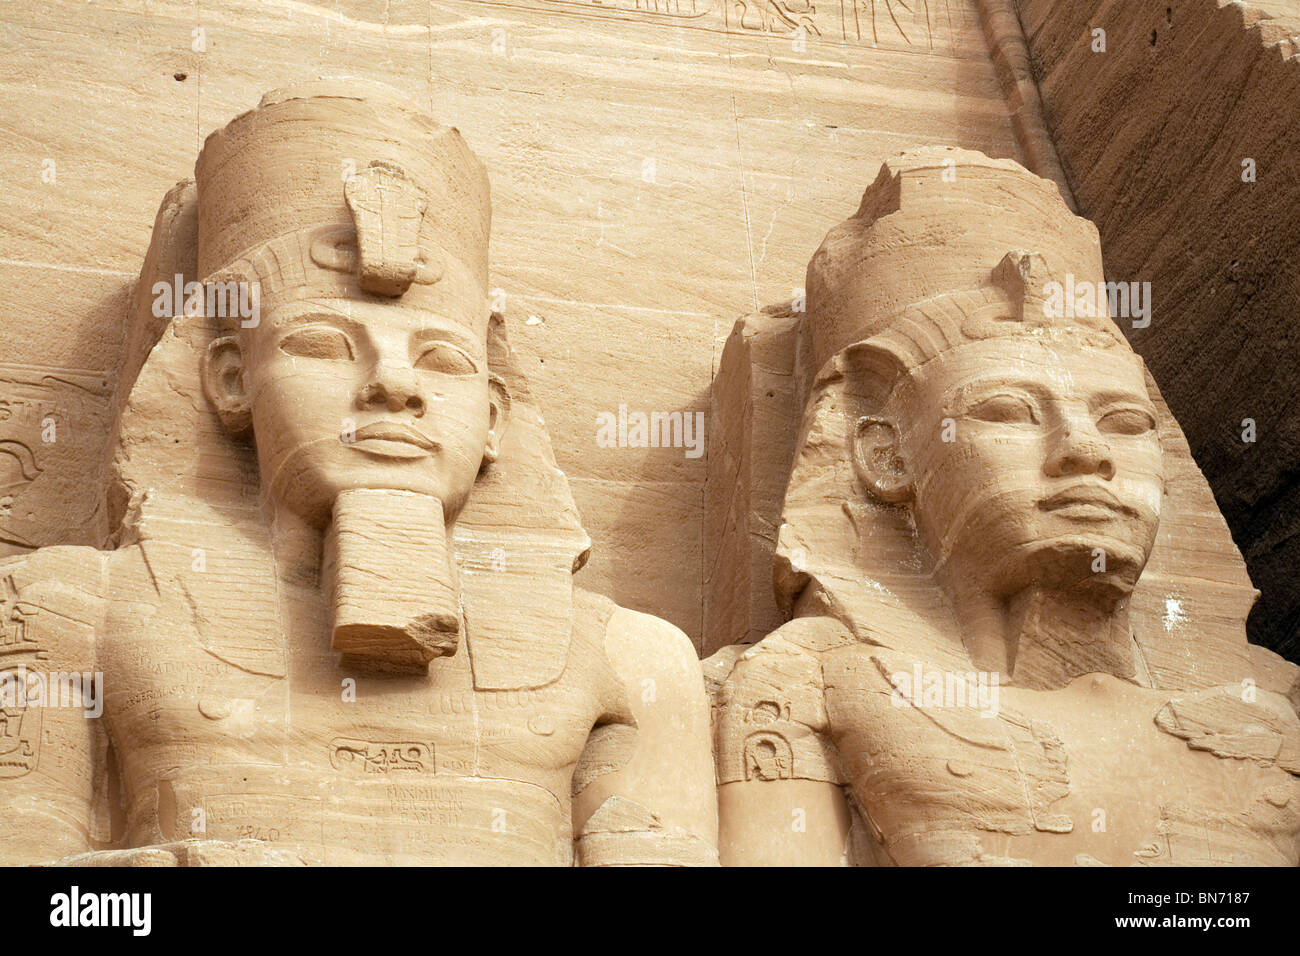 close-up-of-the-heads-of-two-of-the-statues-of-ramses-2-at-the-great-BN7187.jpg